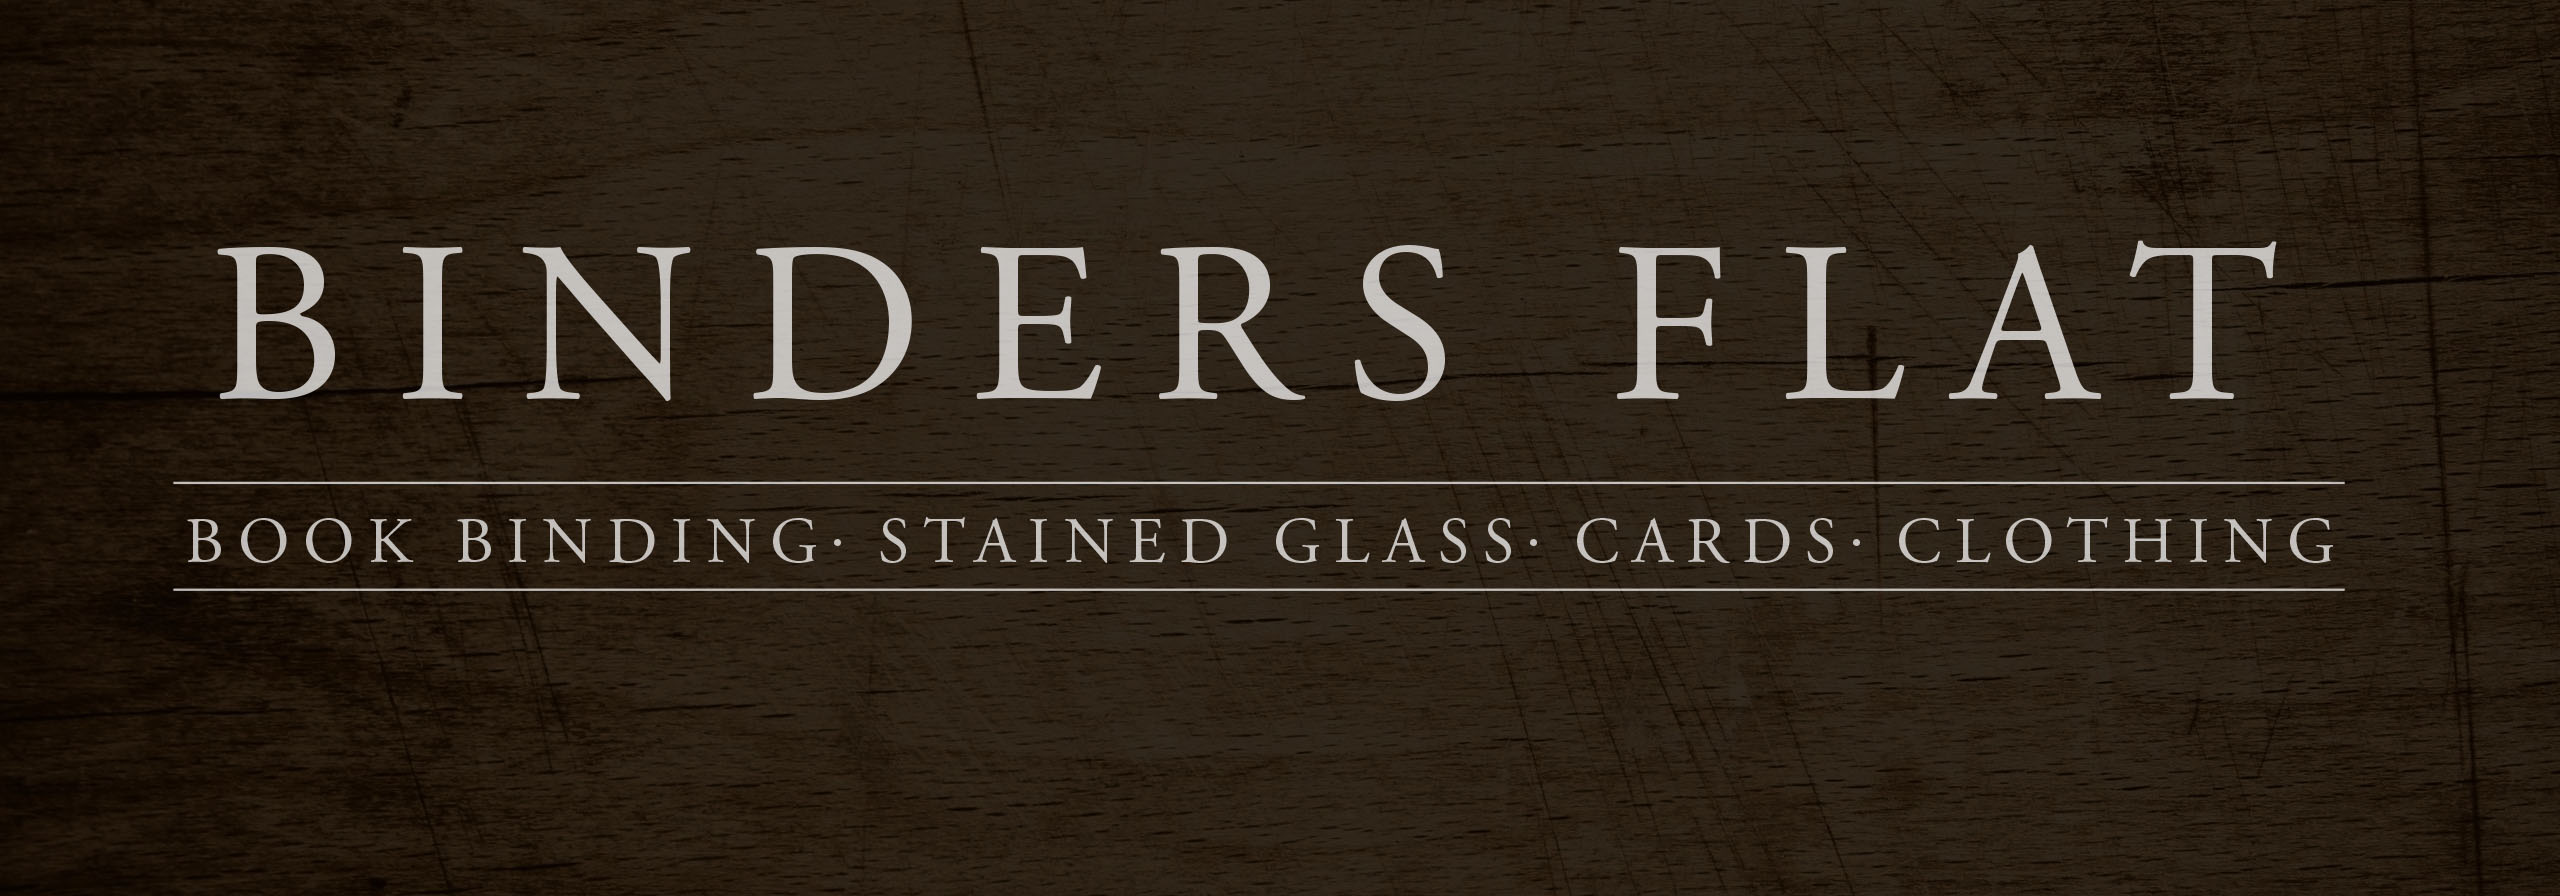 binders flat wood background logo